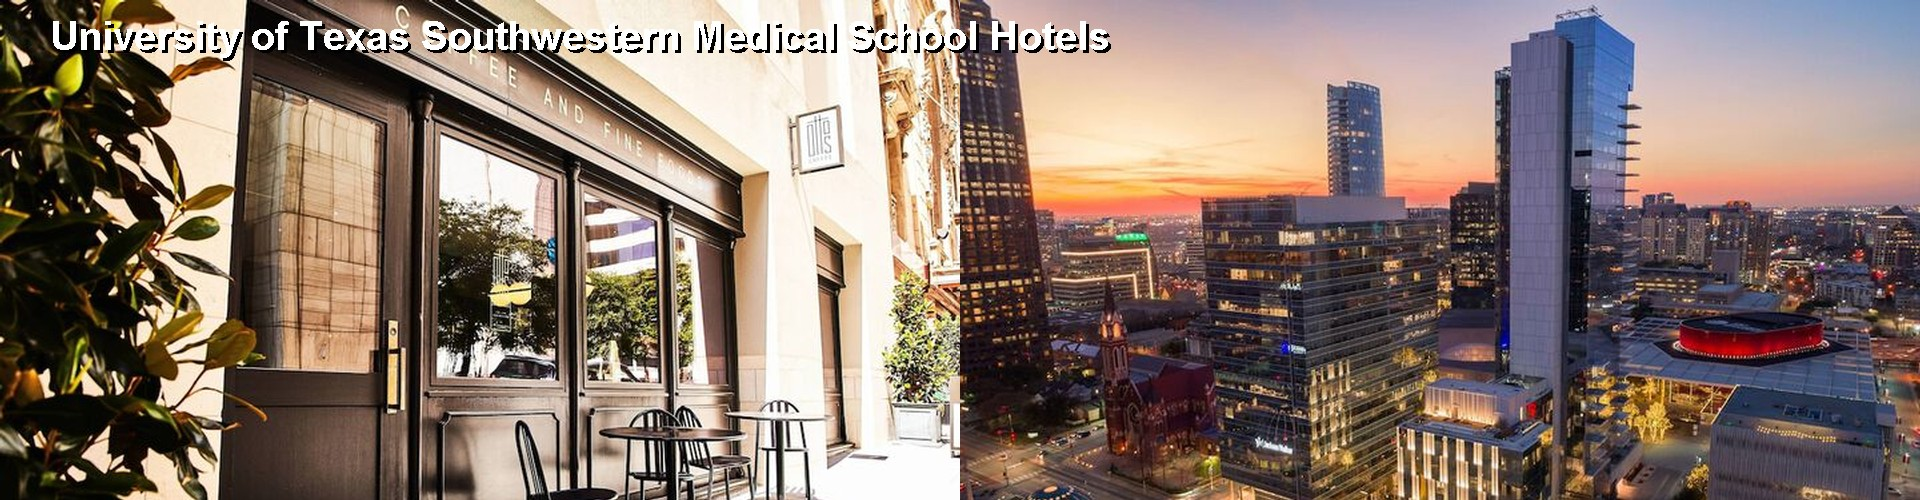 5 Best Hotels Near University Of Texas Southwestern Medical School